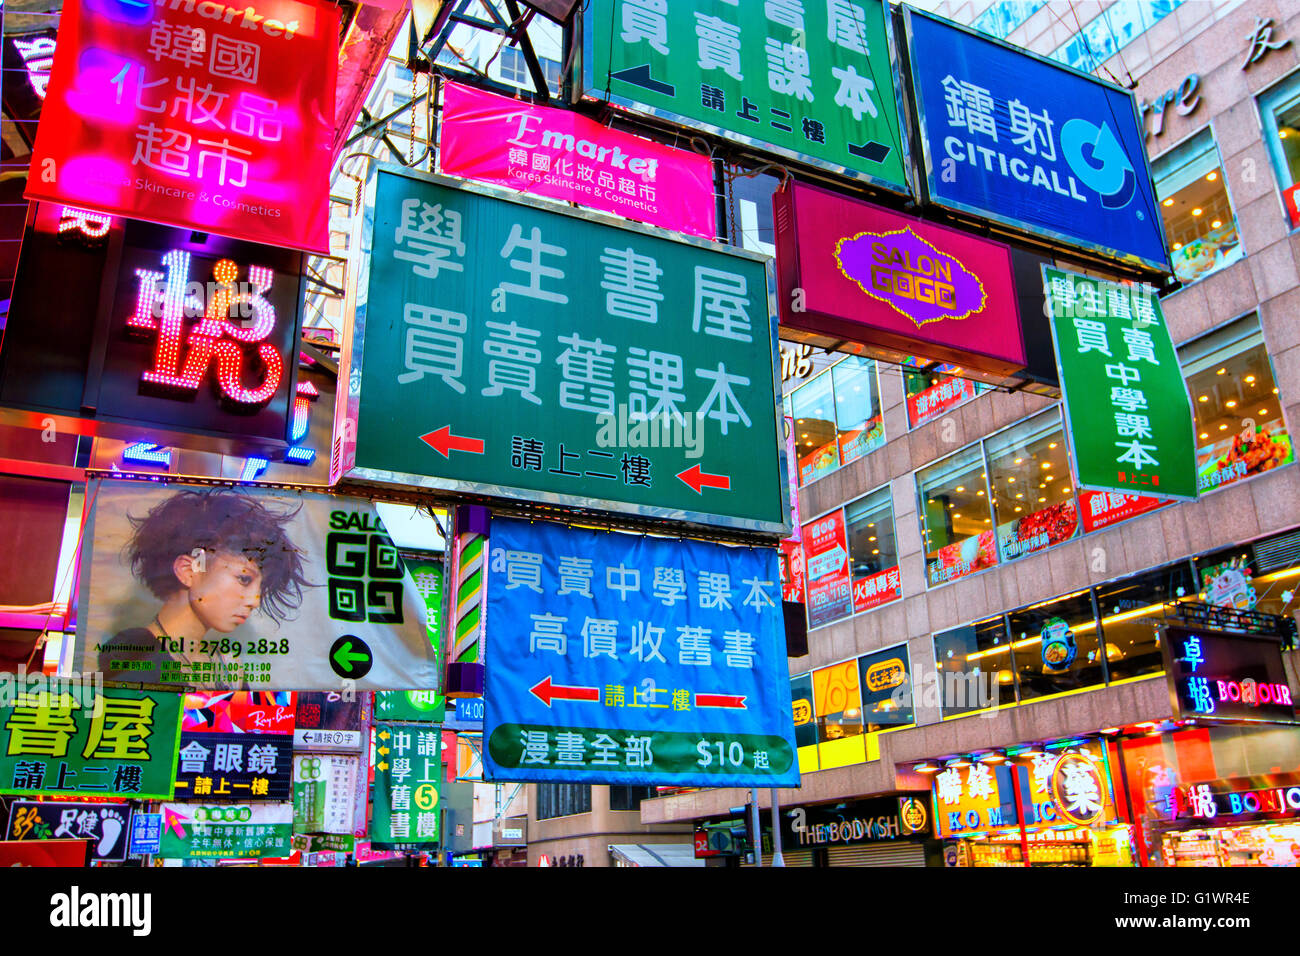 Shop sign in Kowloon - Stock Image